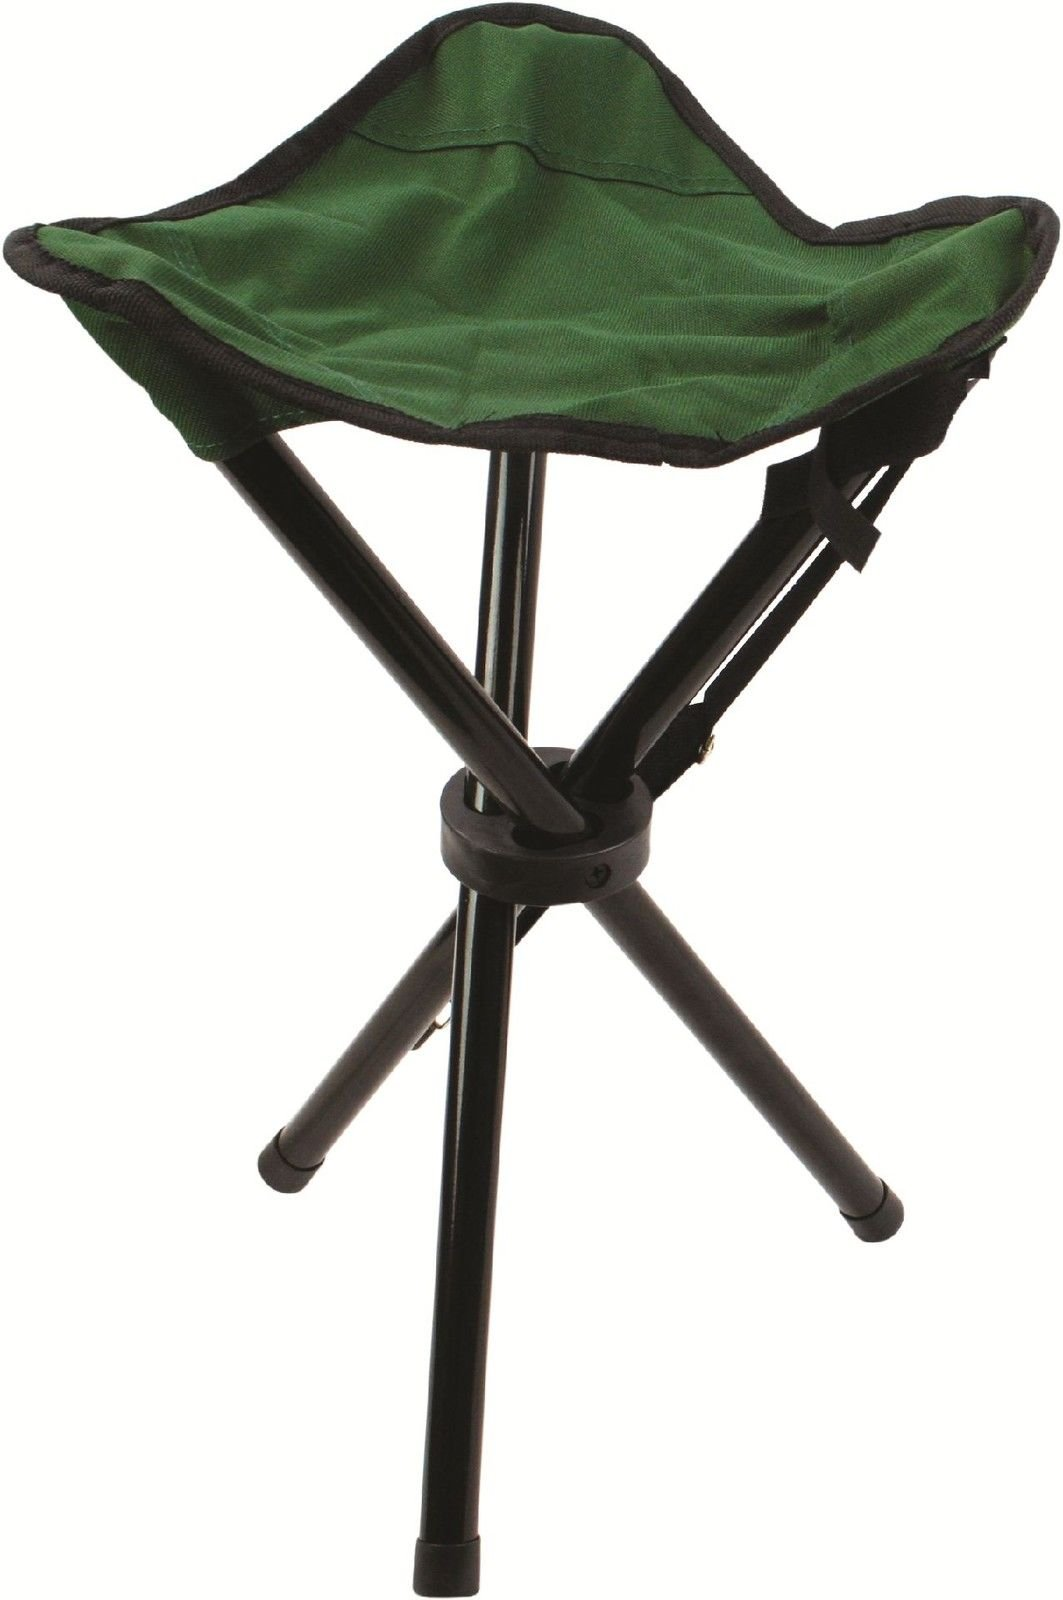 Airblasters Camping Outdoor/Fishing Aluminium Folding Stool by Airblasters